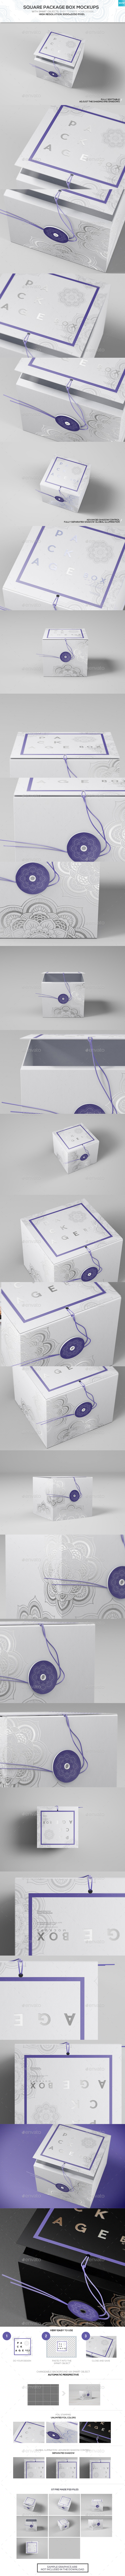 Square Package Box Mockups